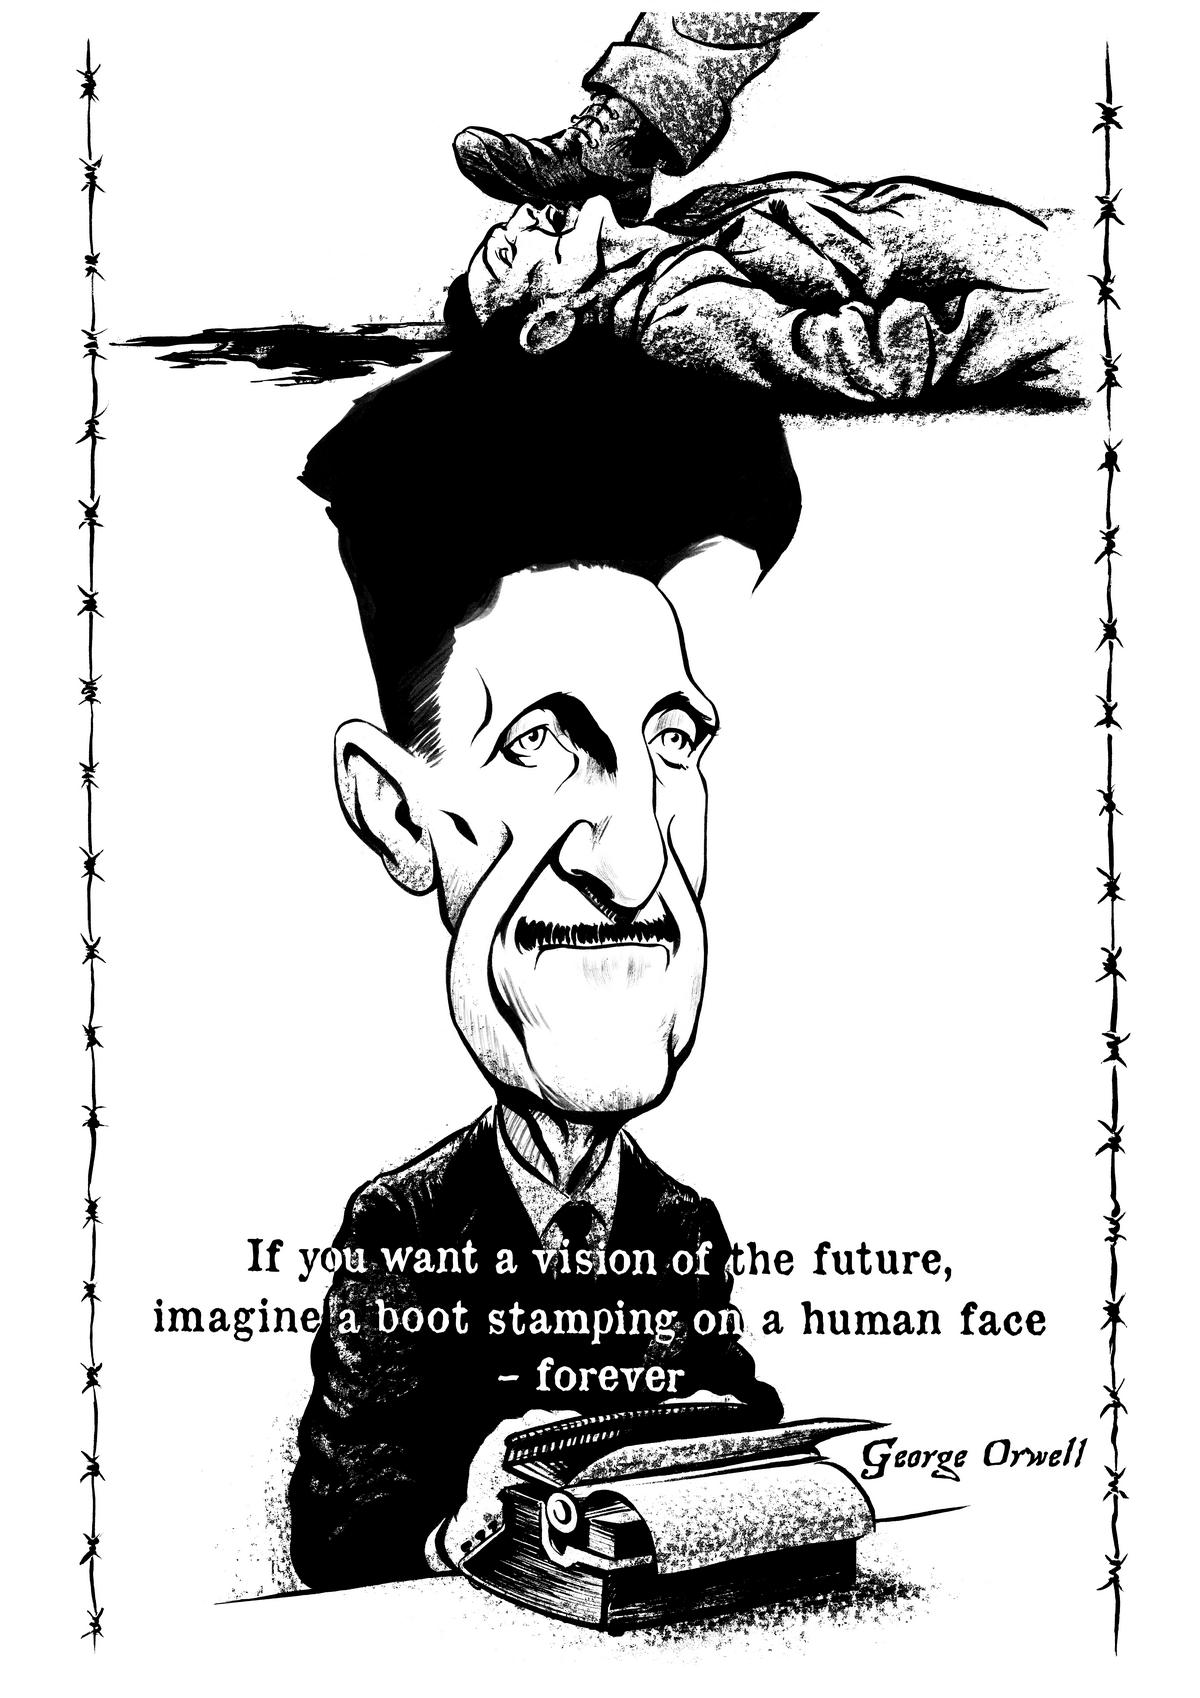 George Orwell caricature